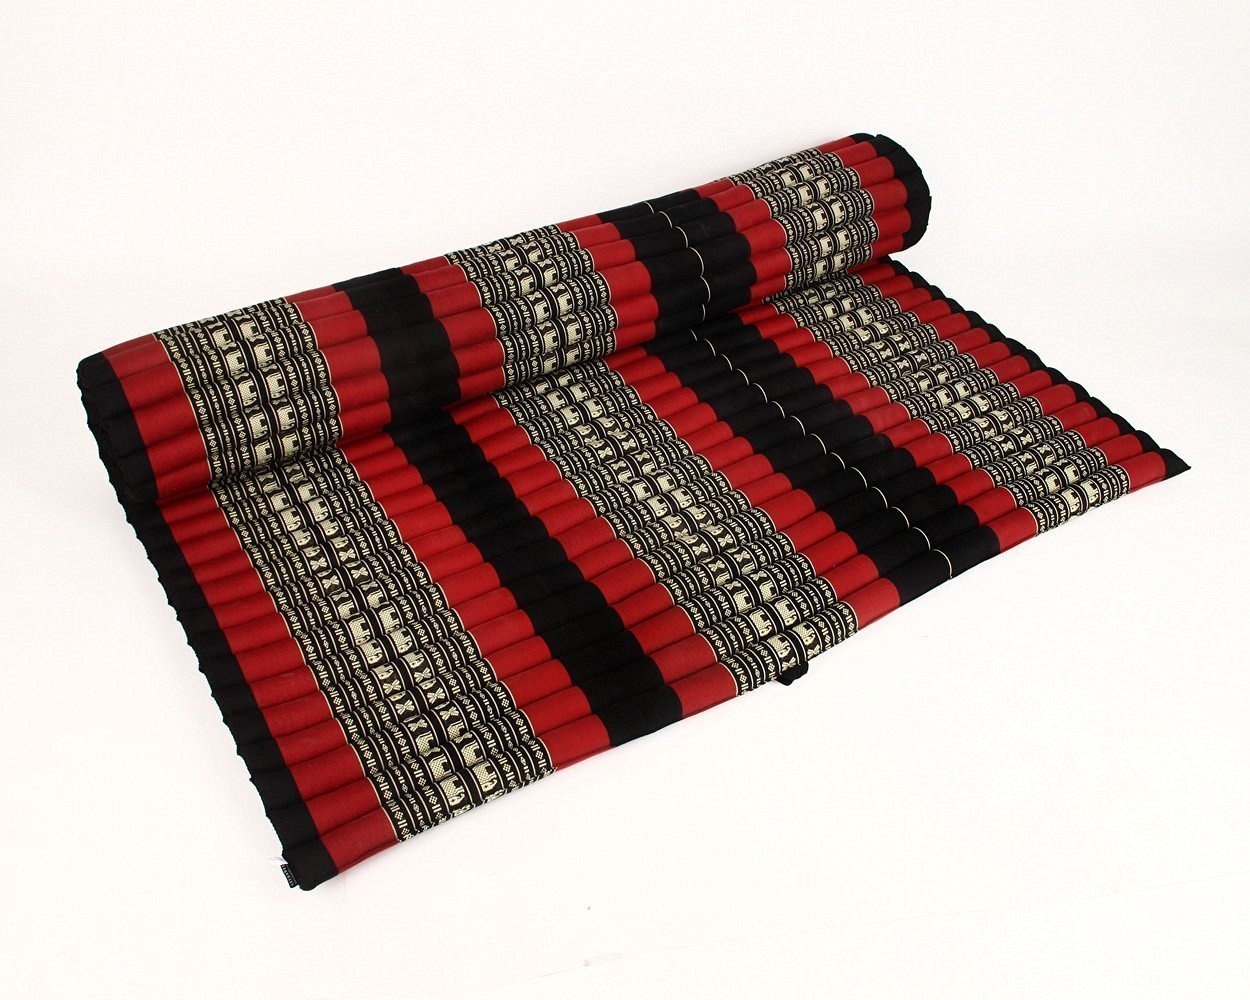 Design by UnseenThailand Roll Up Thai Mattress, Kapok Fabric, Premium Double Stitched, 79x63x2 inches. (Black - Red)